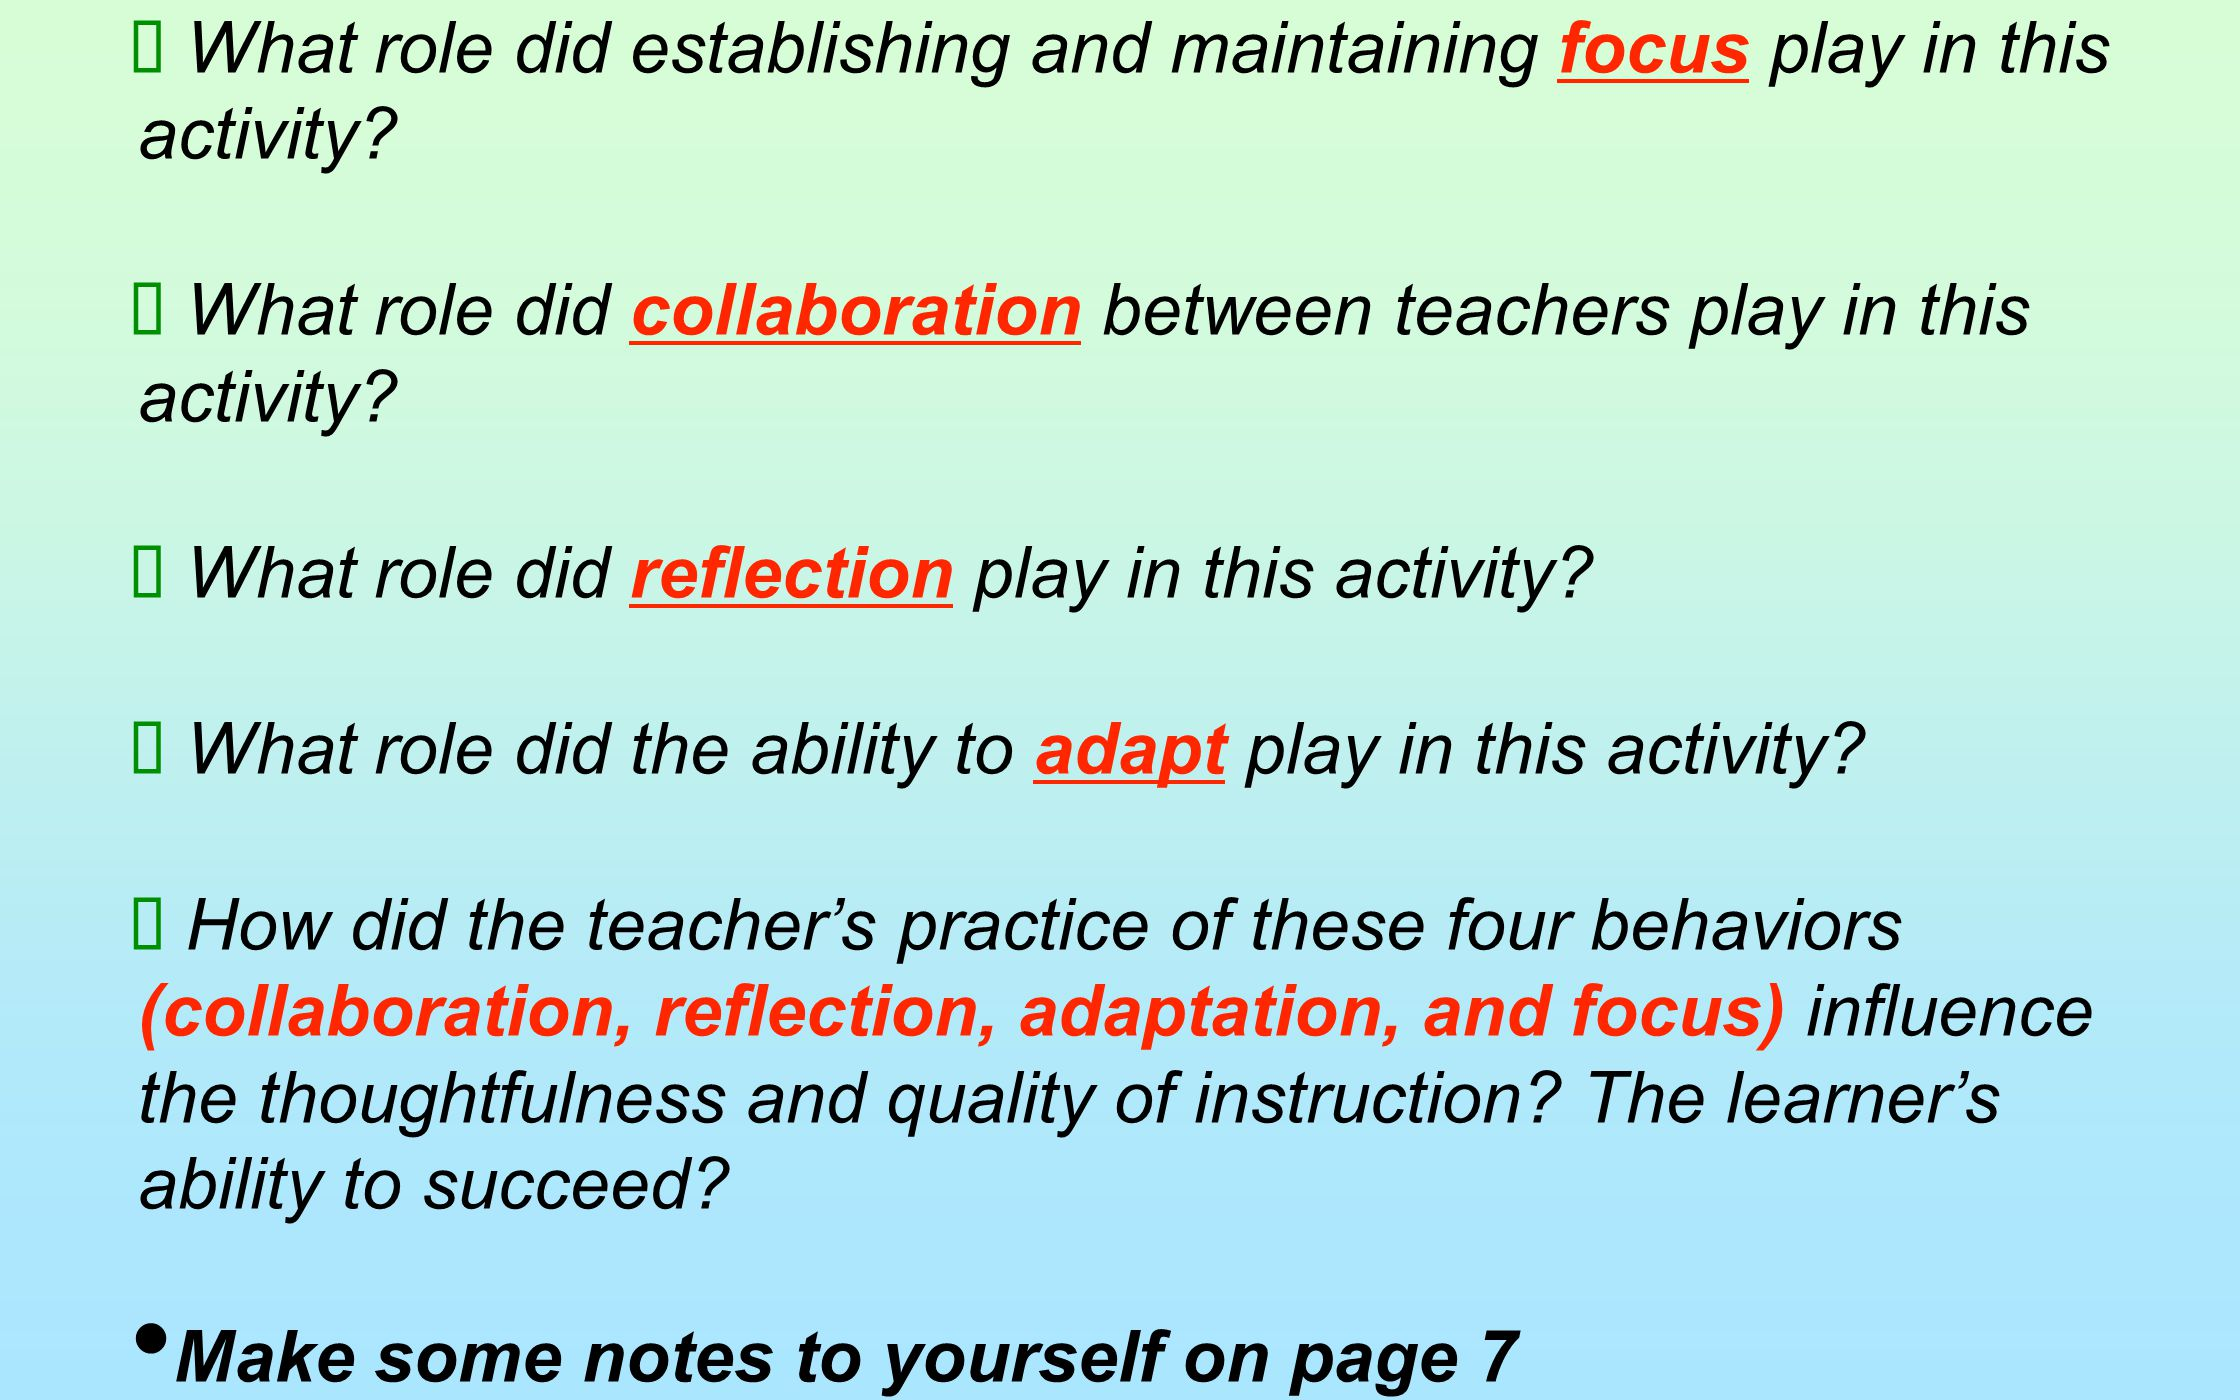 What role did establishing and maintaining focus play in this activity